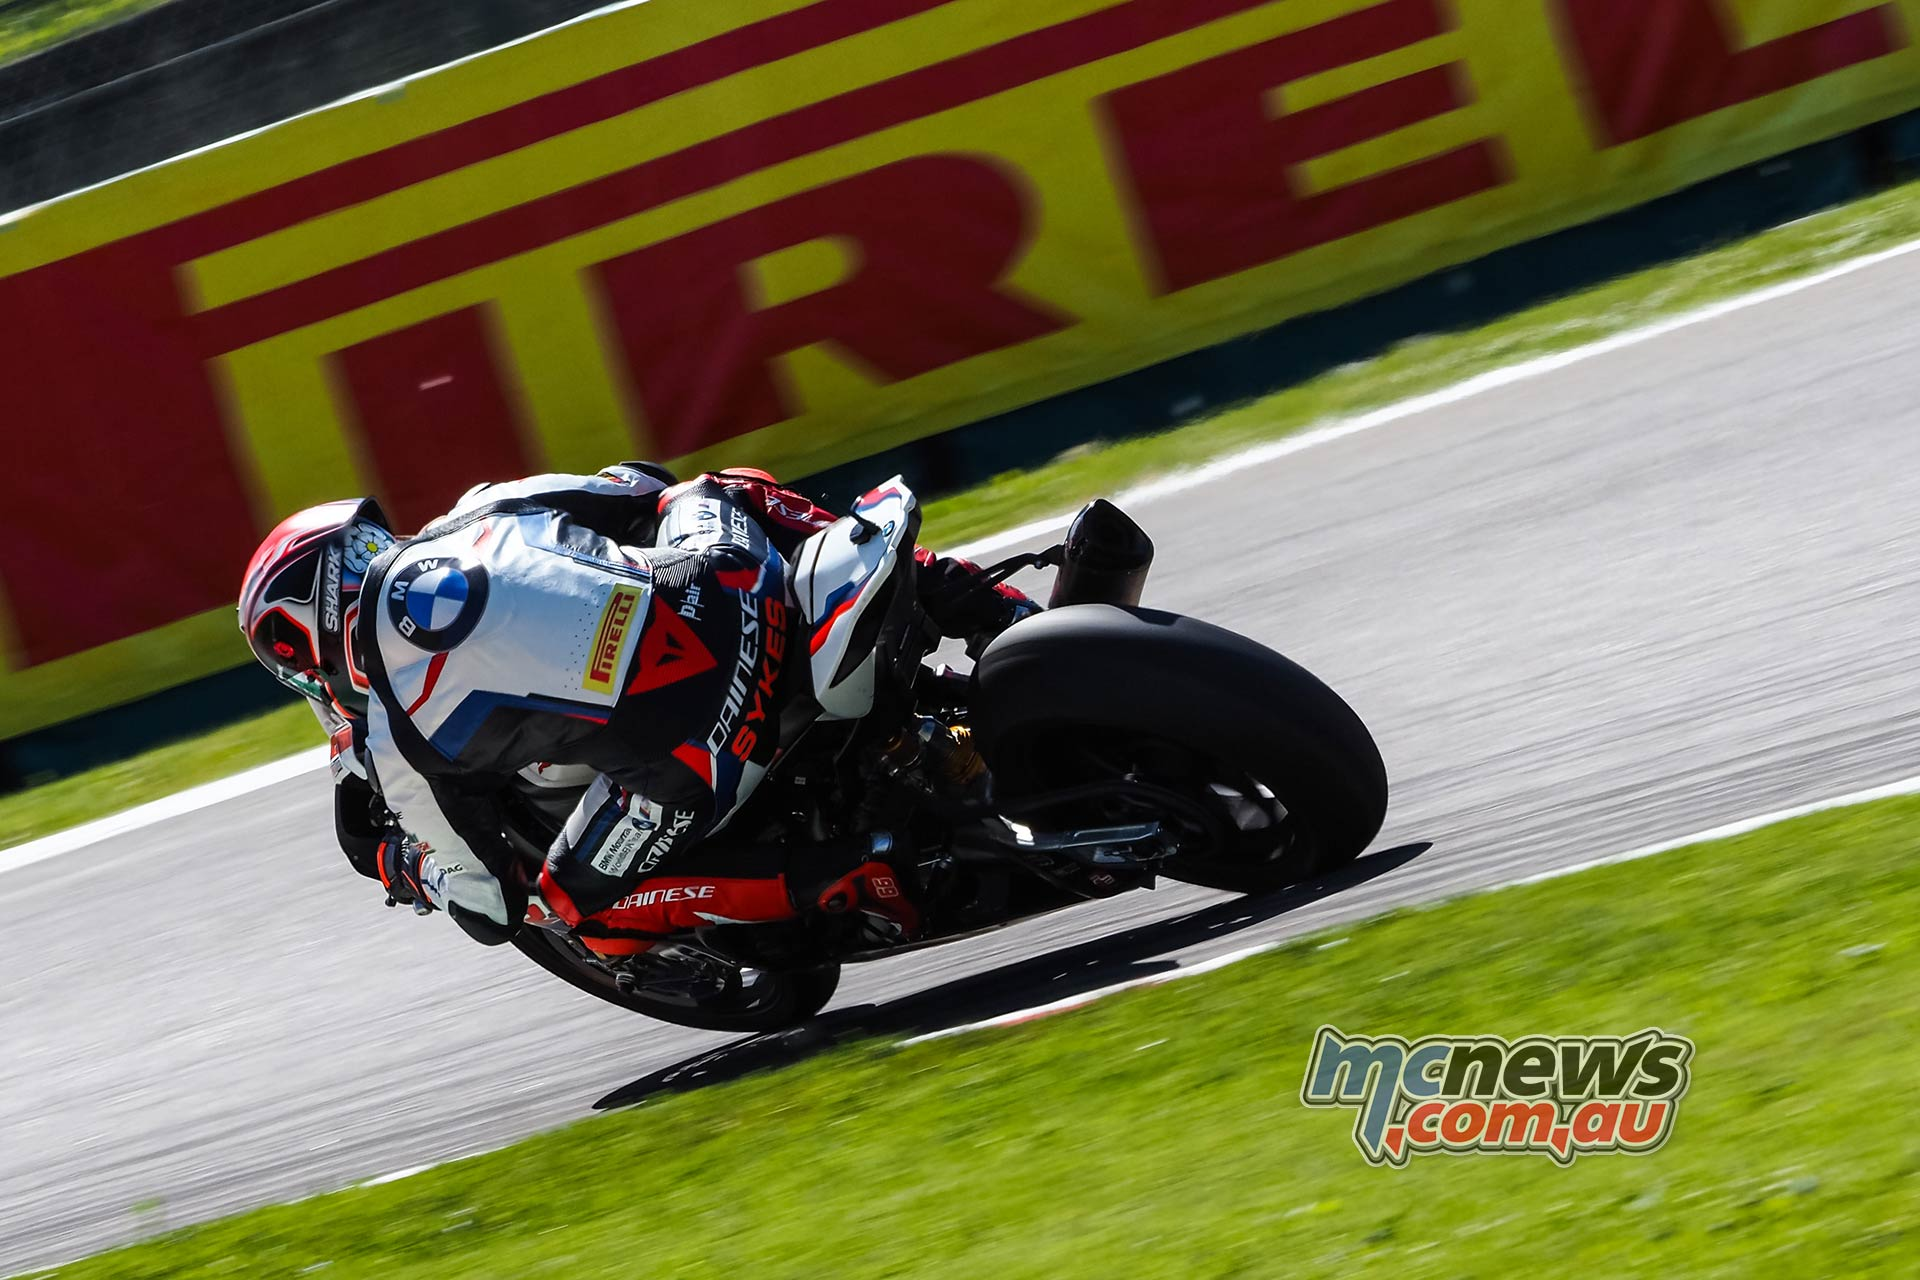 WSBK Rnd Imola Friday Sykes